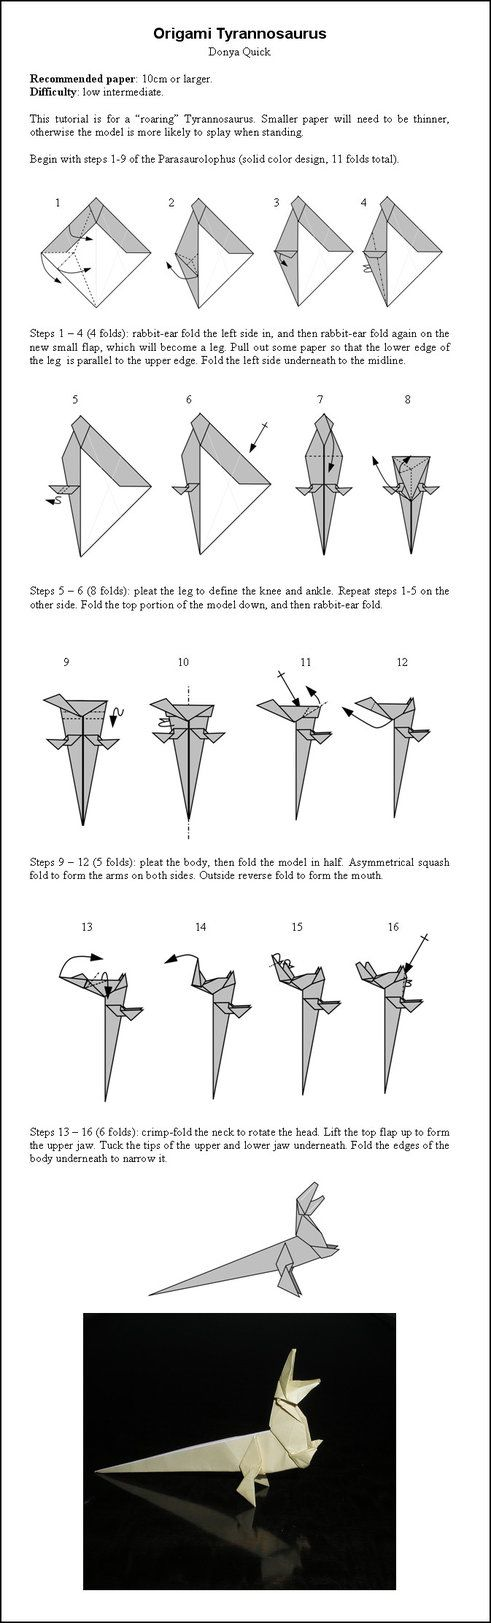 Origami T-rex Instructions by DonyaQuick